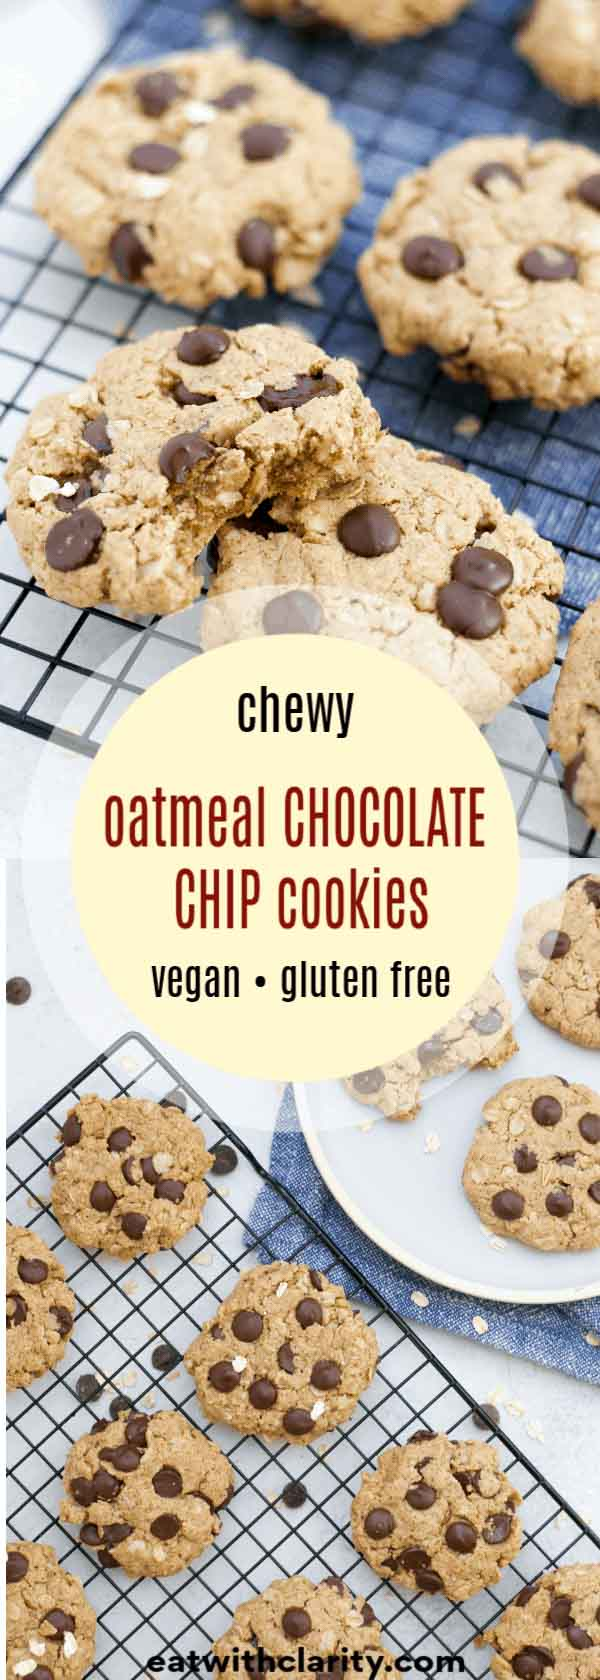 Want a bite of these vegan oatmeal chocolate chip cookies?